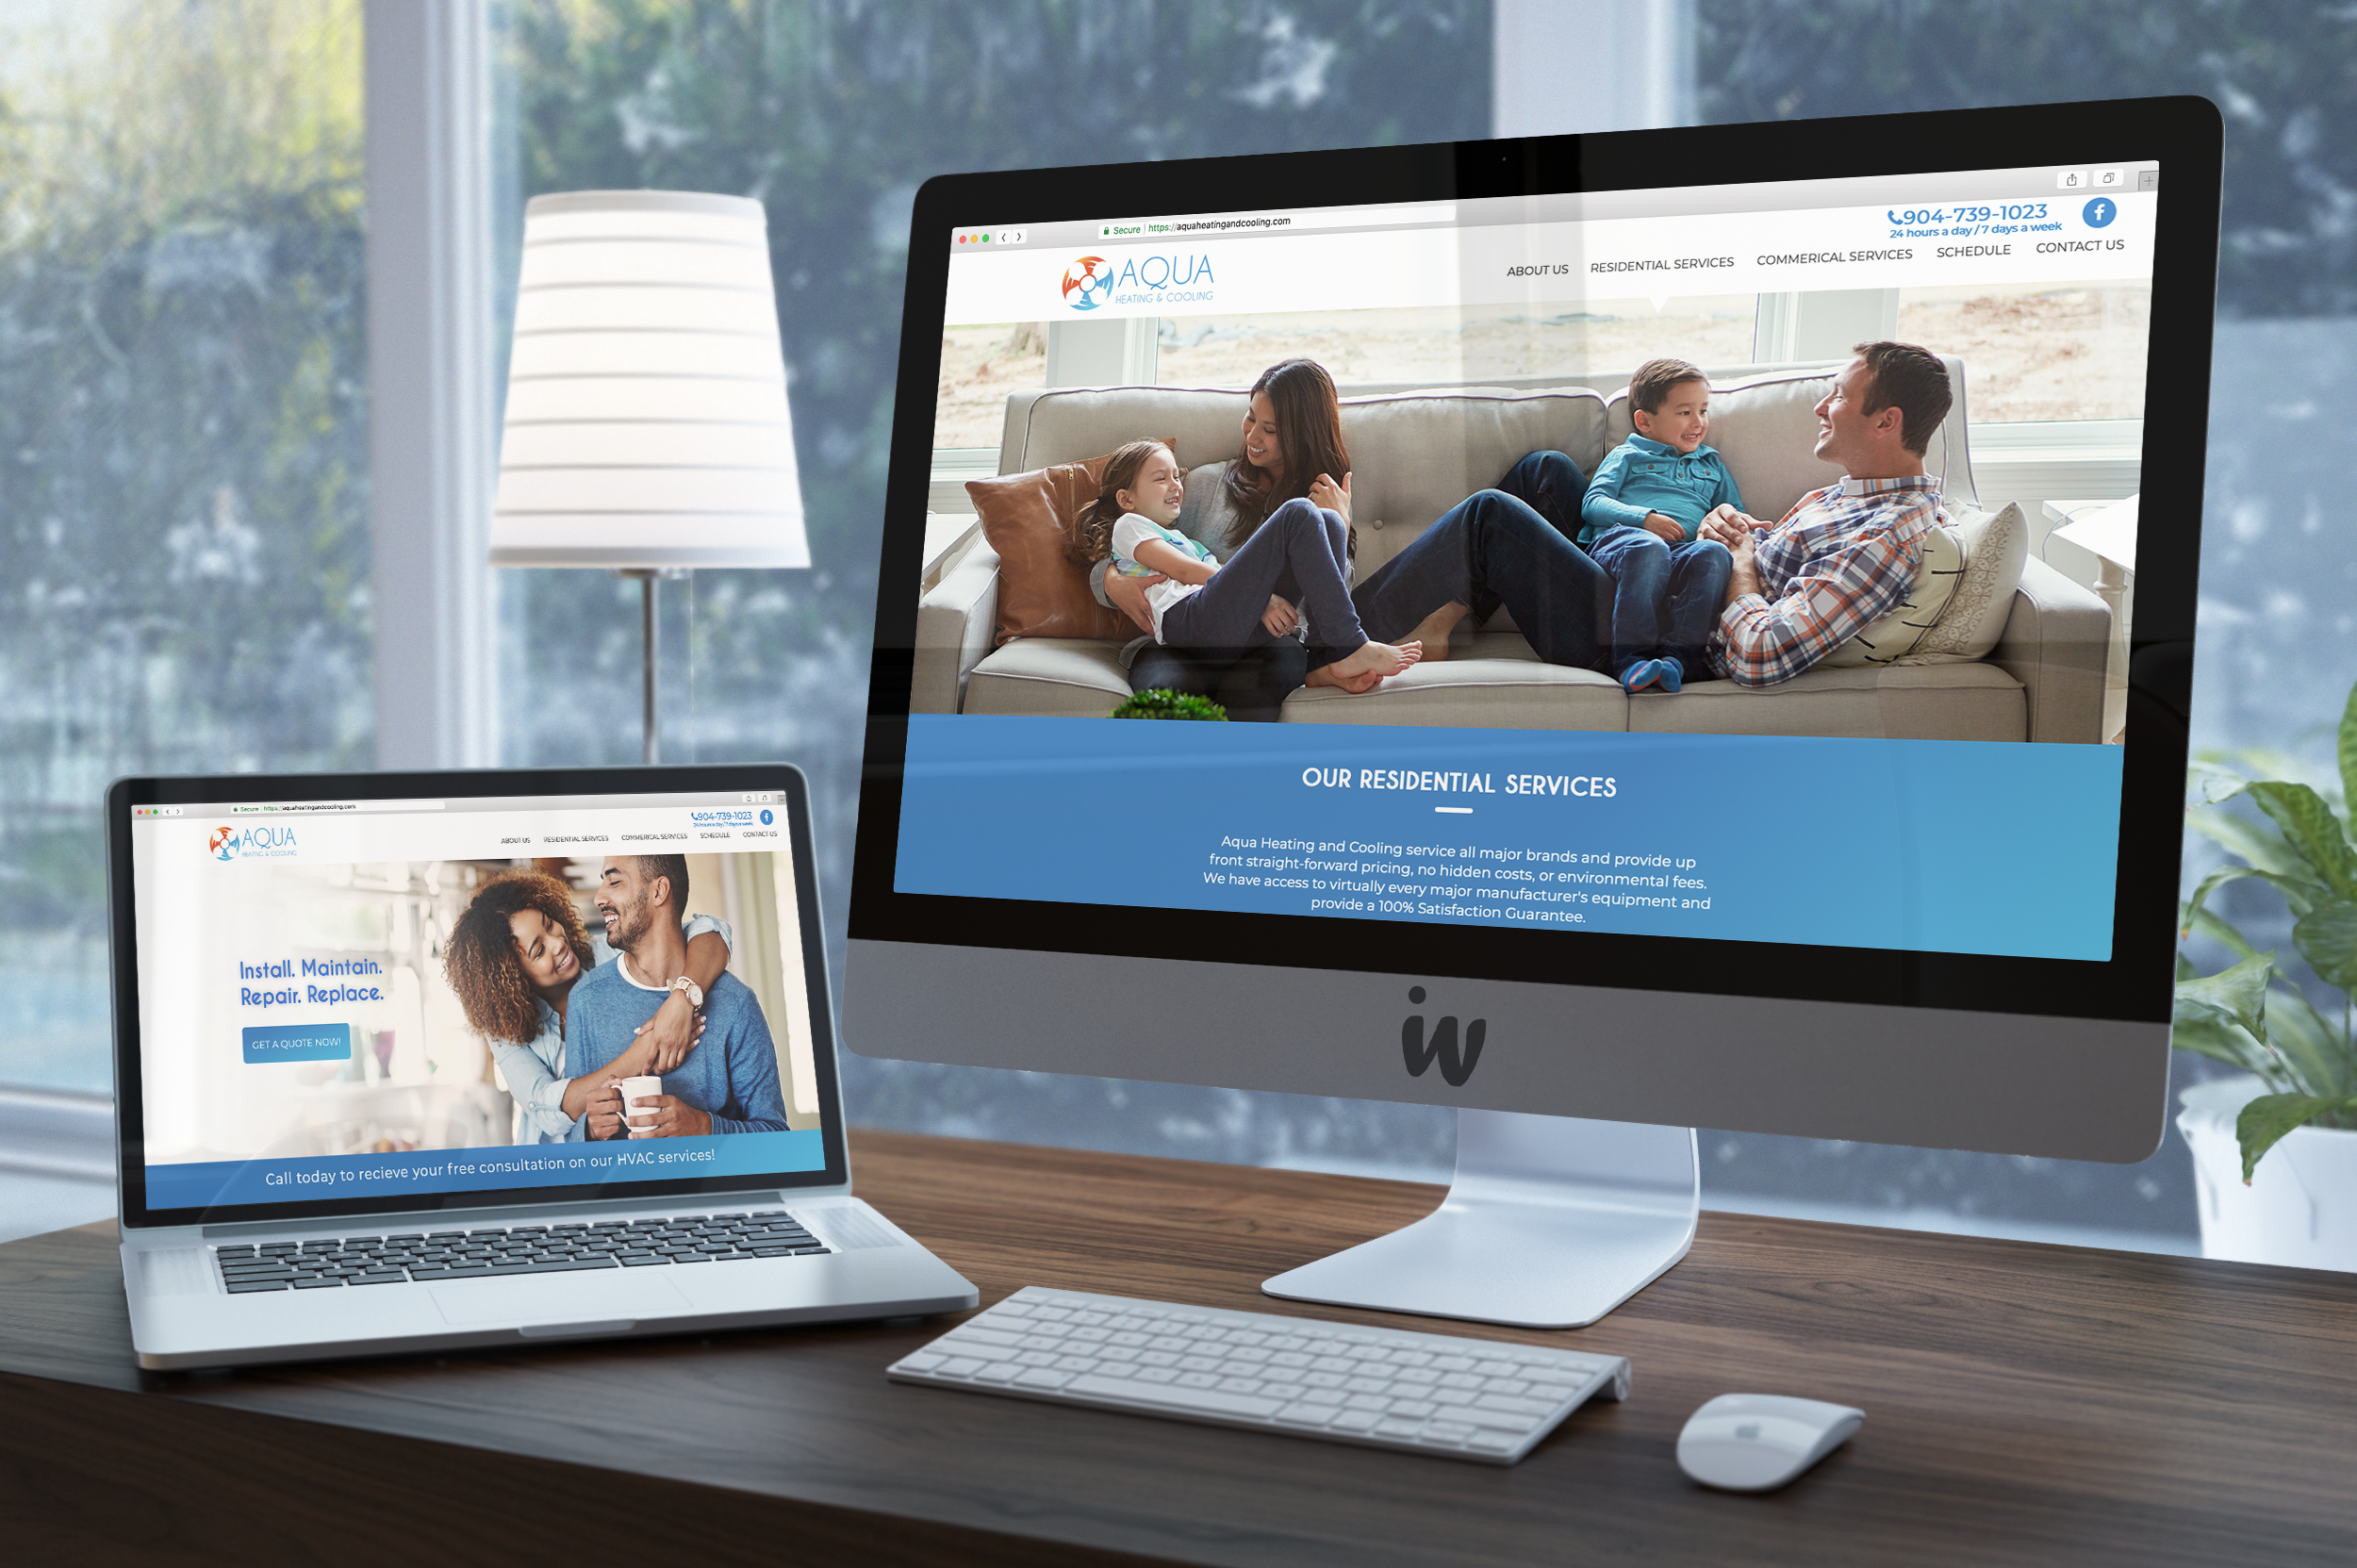 This is a image of AQUA Heating and Cooling's website on a iMac and MacBook Pro